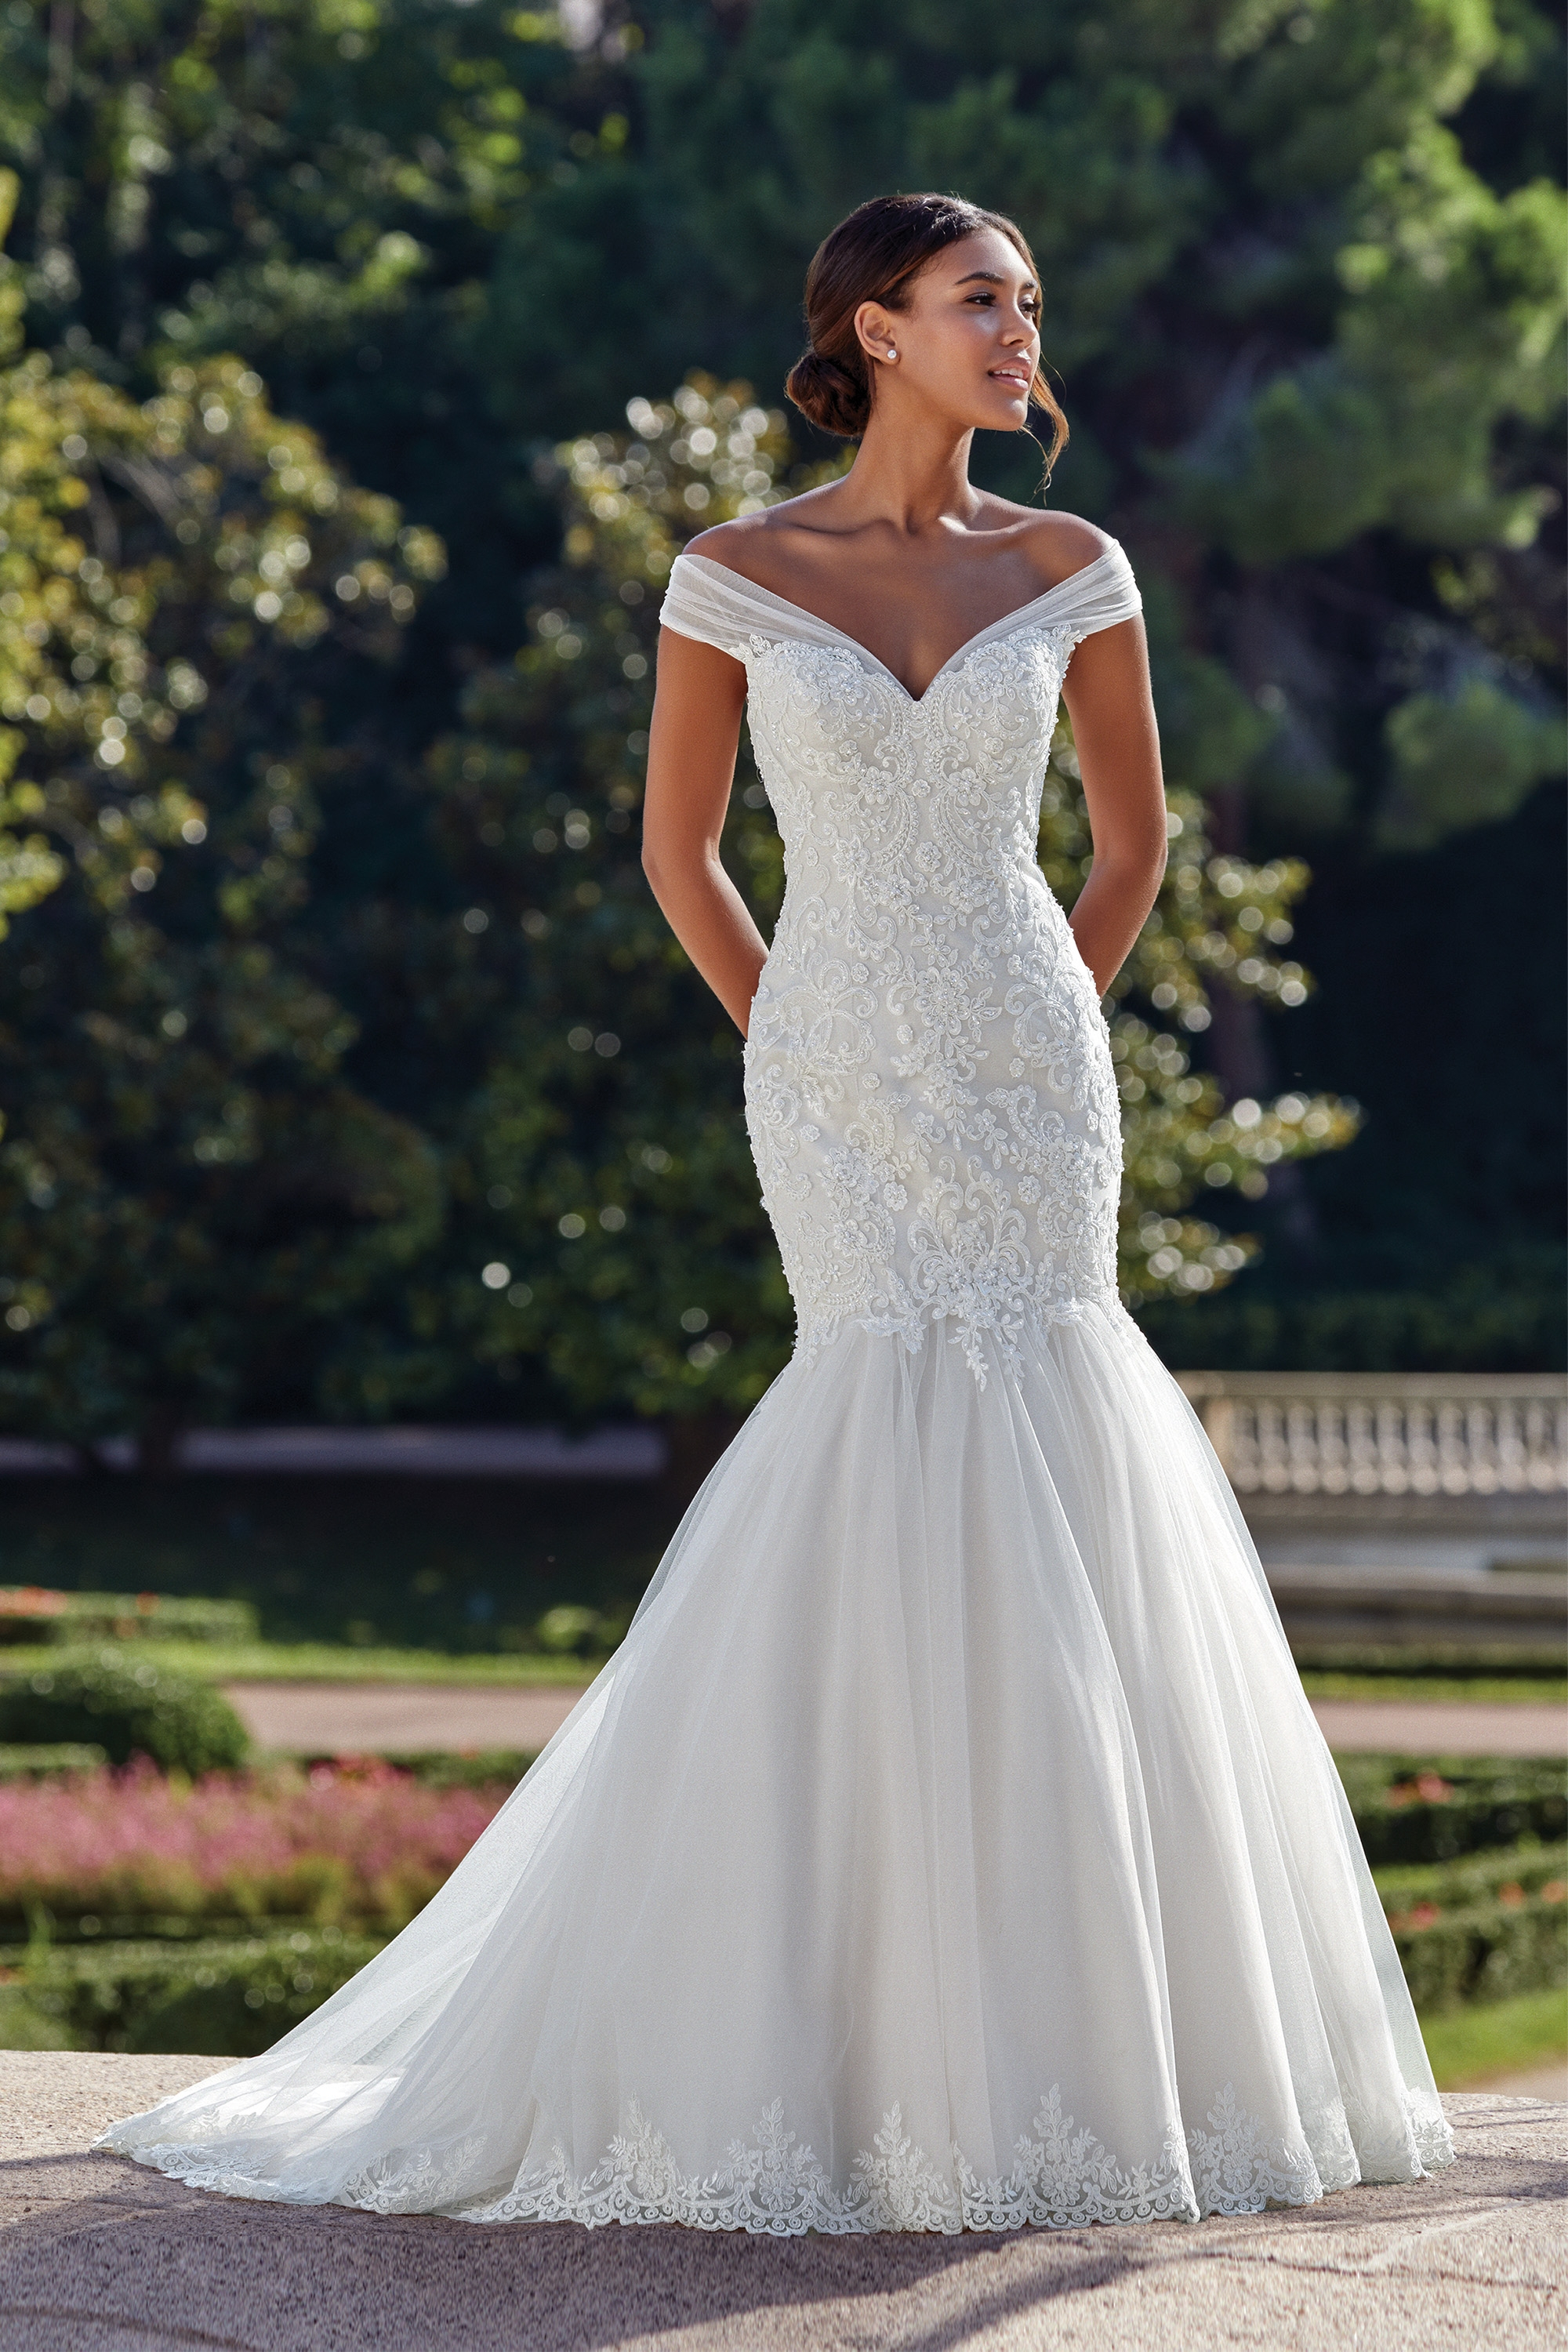 44148 - Sequin, beaded Alecon lace adorns the bodice, mermaid tulle skirt finished with matching lace